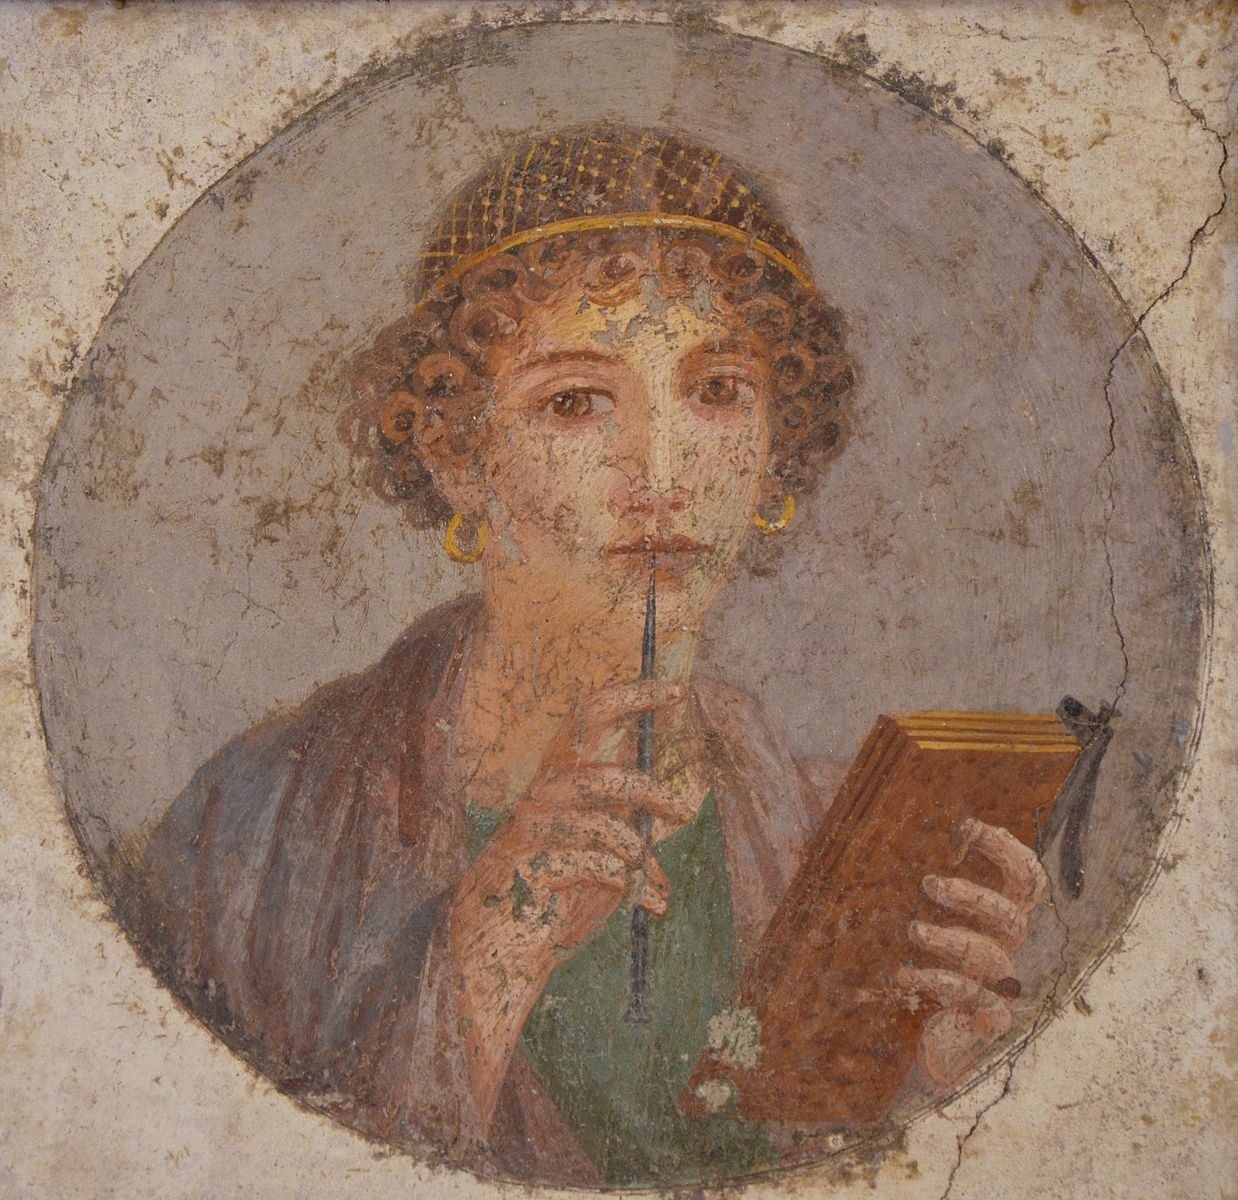 Fresco from Pompeii of woman with a stylus